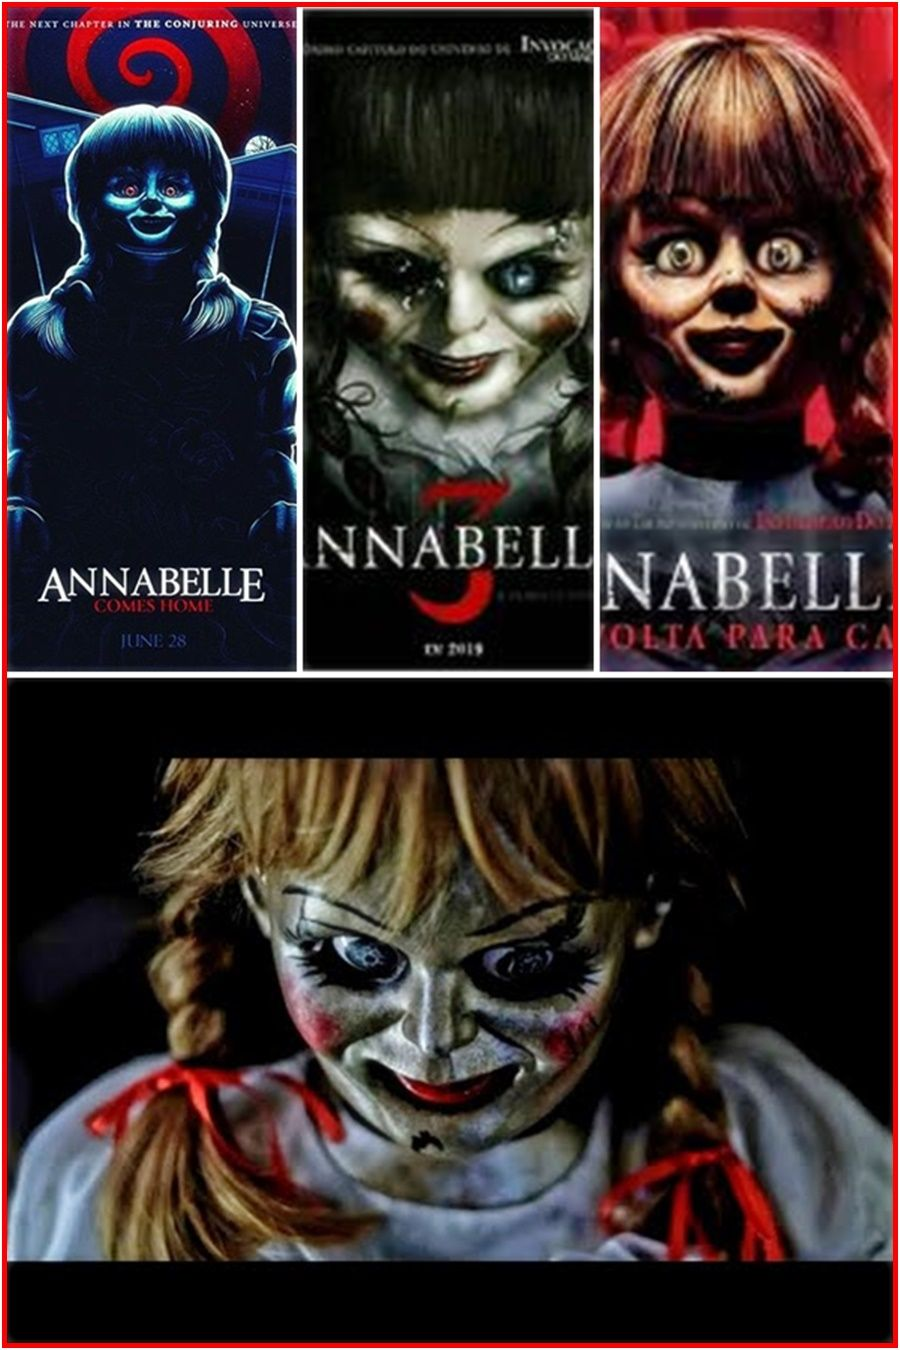 Annabelle 3 Streaming Film C O M P L E T O 2019 Horror Movie Posters Movies Watch Tv Shows